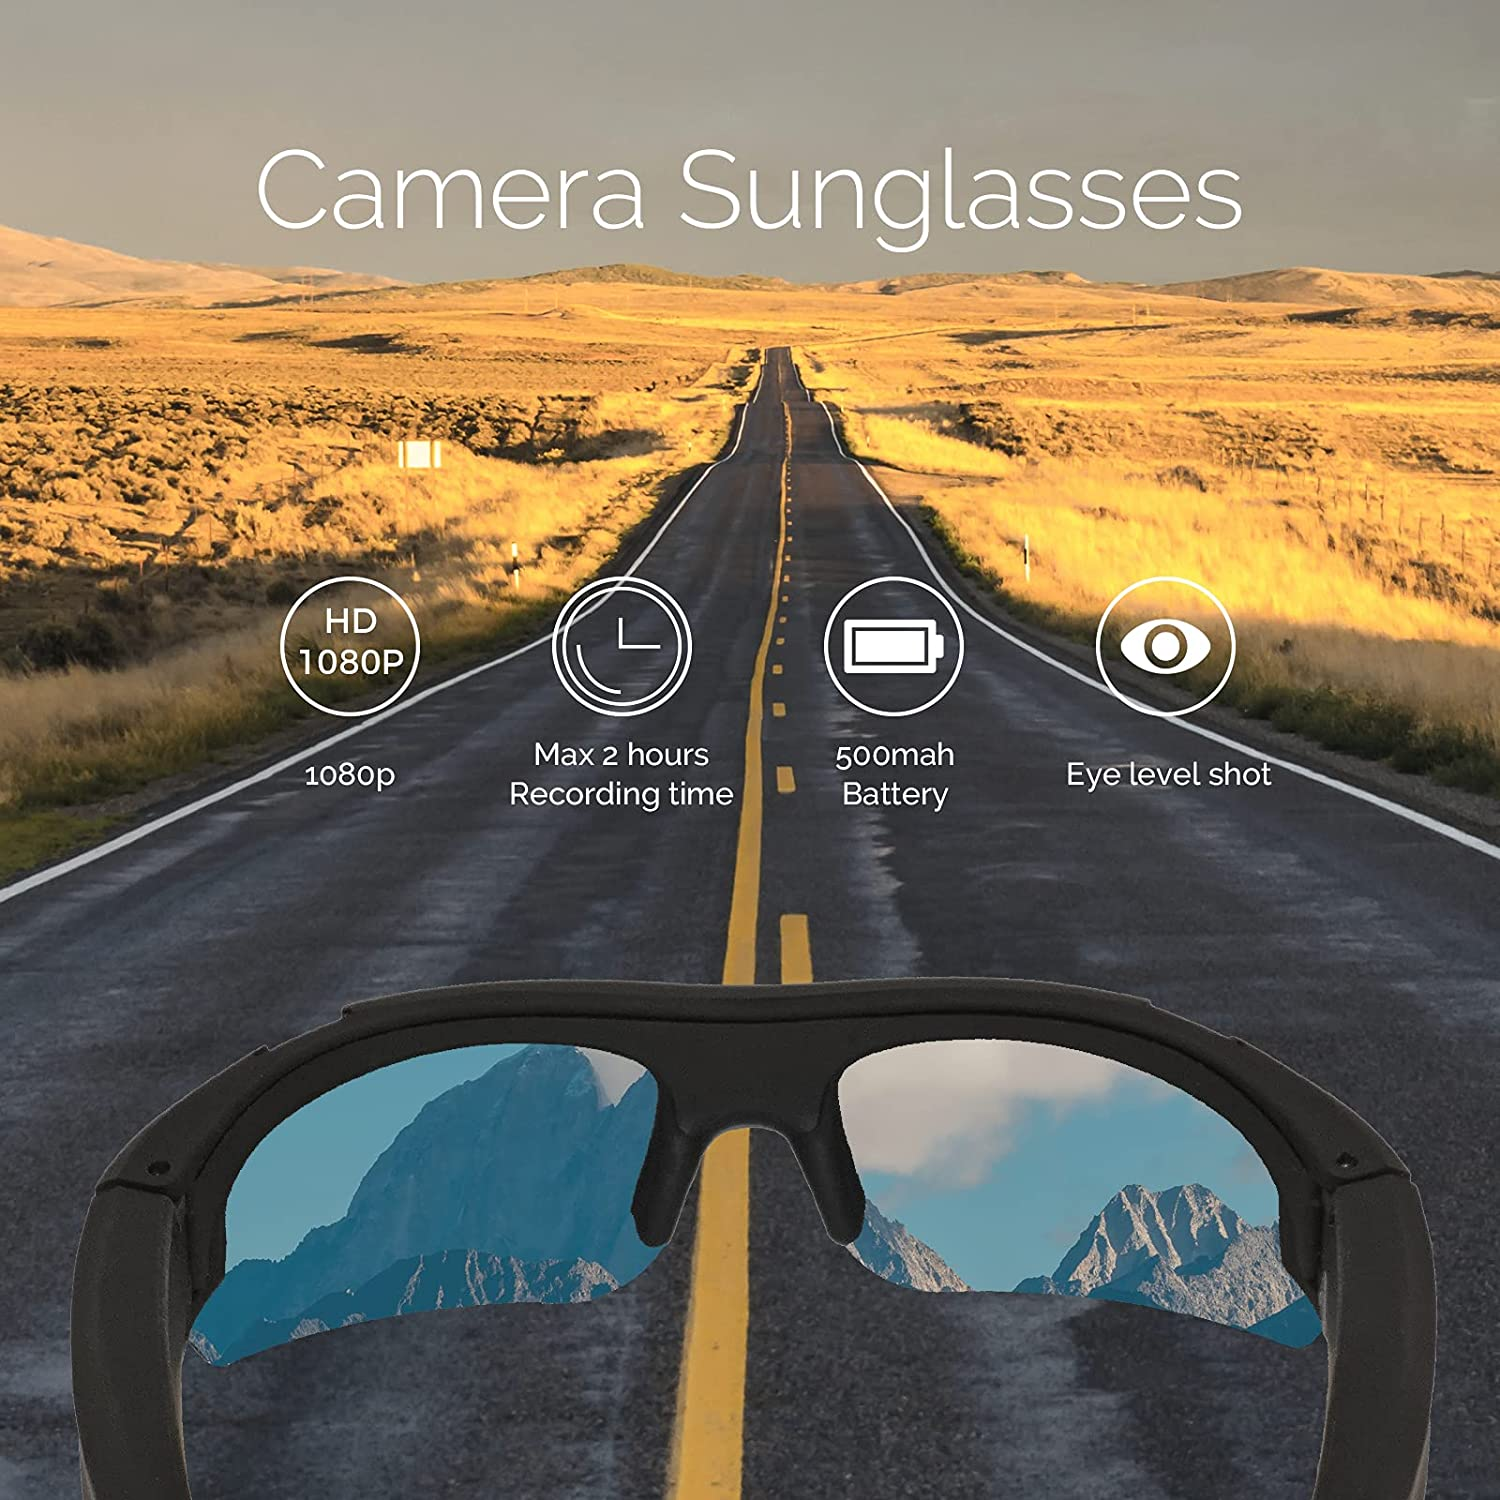 Camera Glasses 1080P - HD Video Glasses, Wearable Camera, Polarized Lens, Sport Design for Driving, Daily Recording, Traveling, A Great Gift for Family and Friends (No TF Cards)